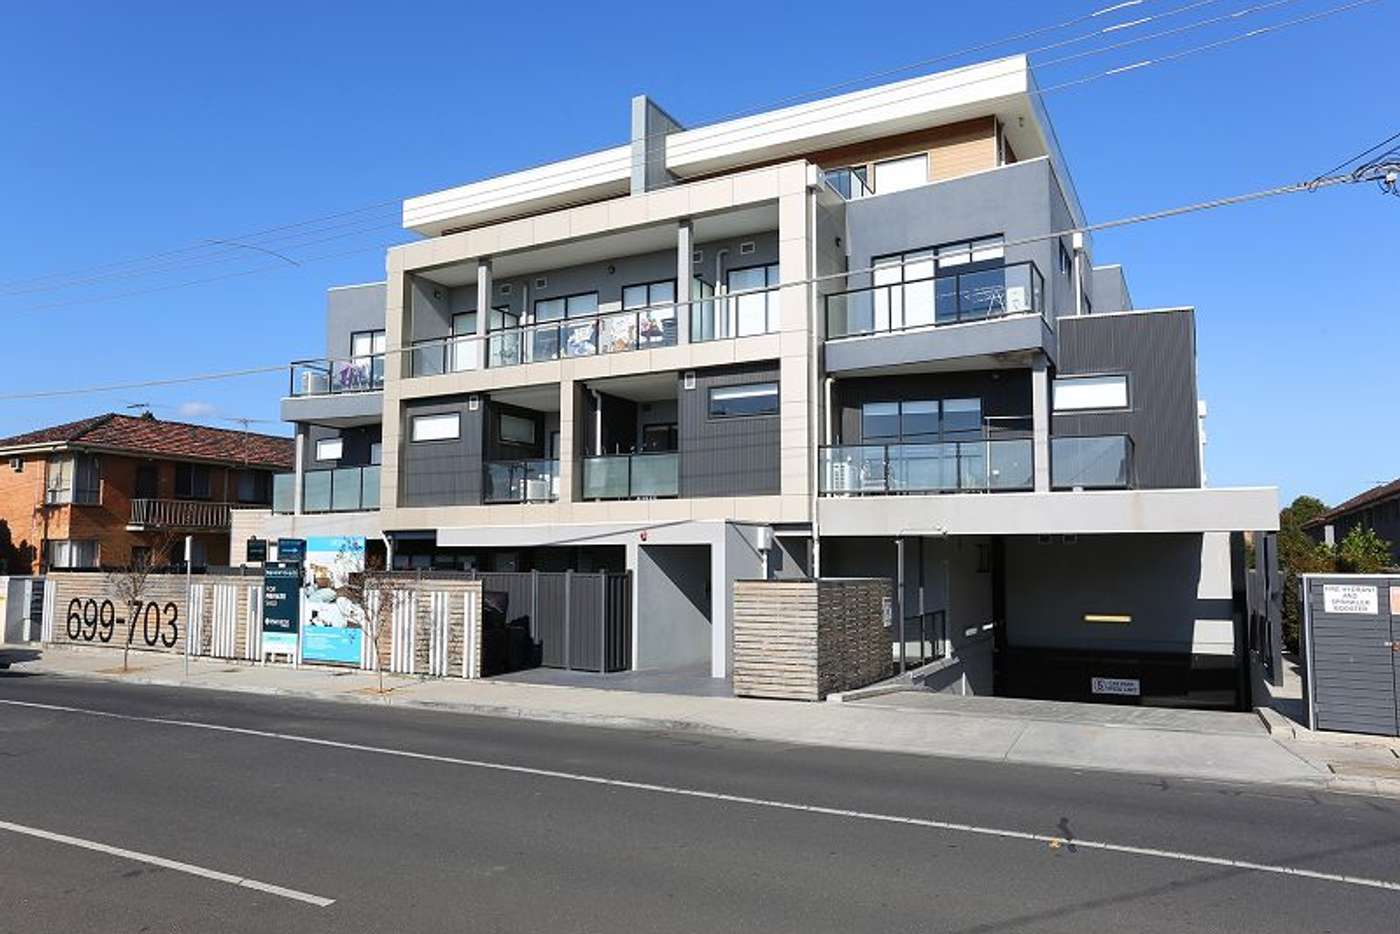 Main view of Homely apartment listing, 106/699C Barkly Street, West Footscray VIC 3012